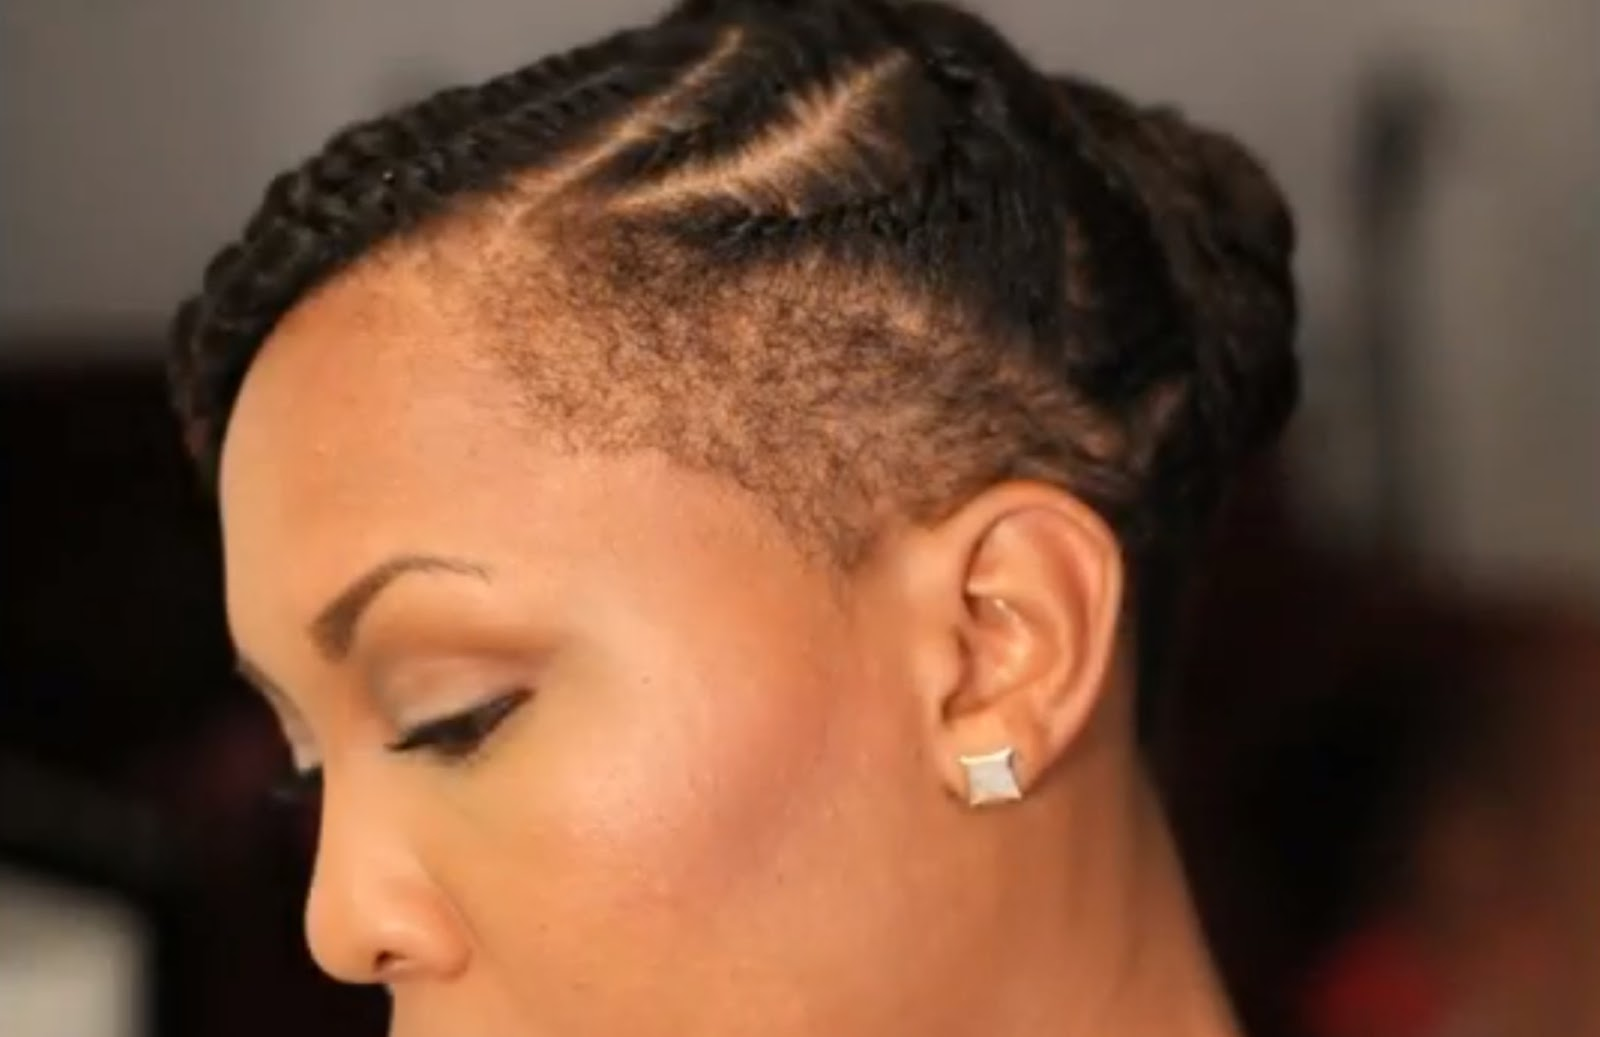 Stupendous How To Style A Tapered Side Shaved Natural Hairstyle Short Hairstyles For Black Women Fulllsitofus